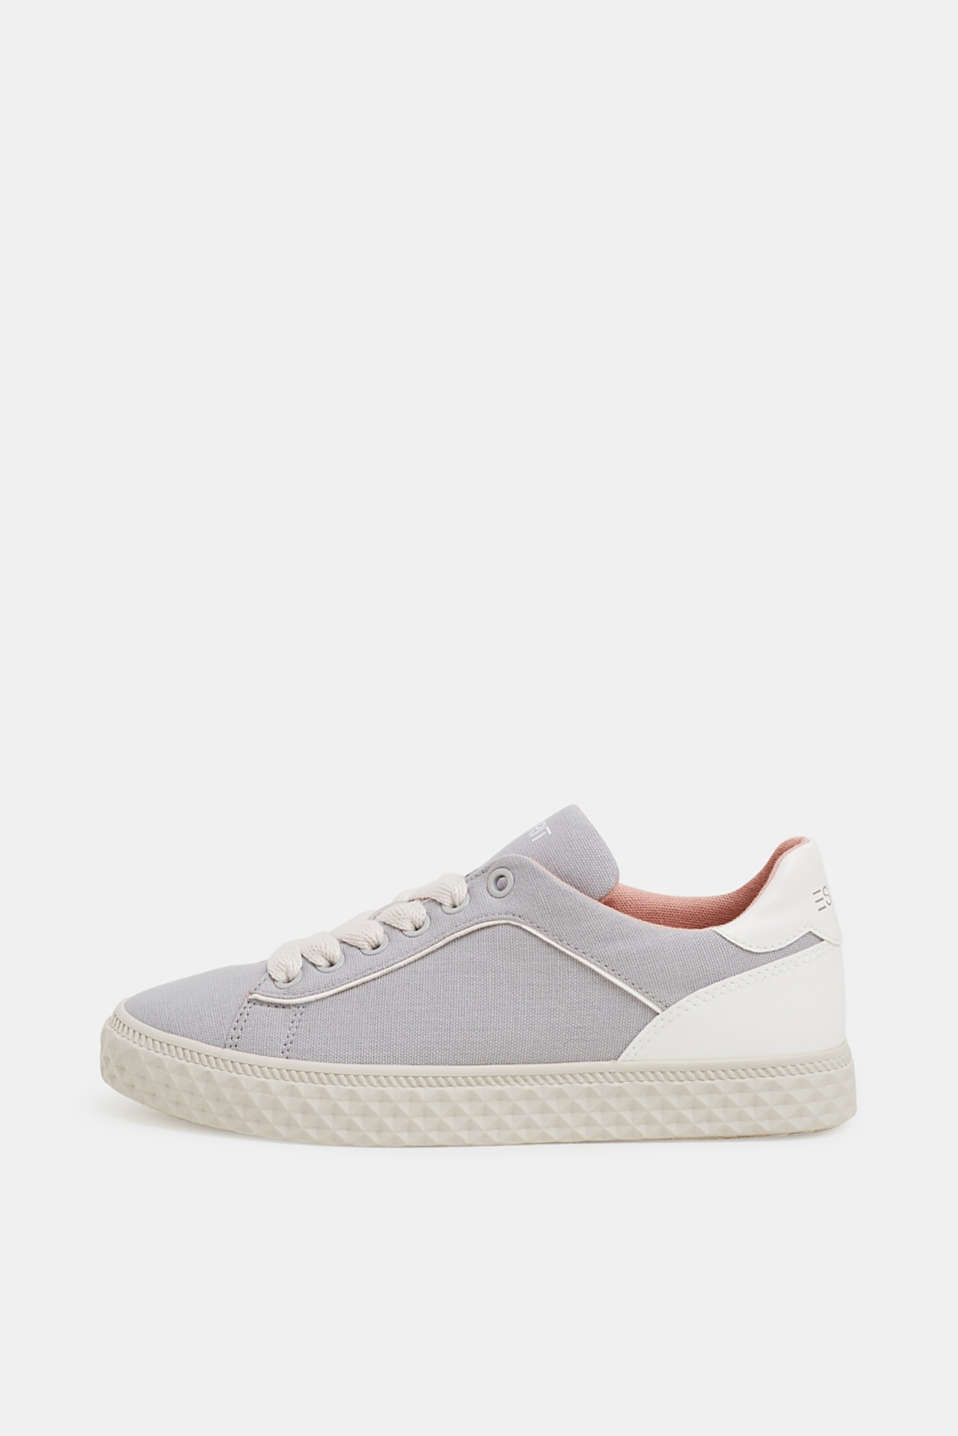 Esprit - Sneakers con mix di materiali